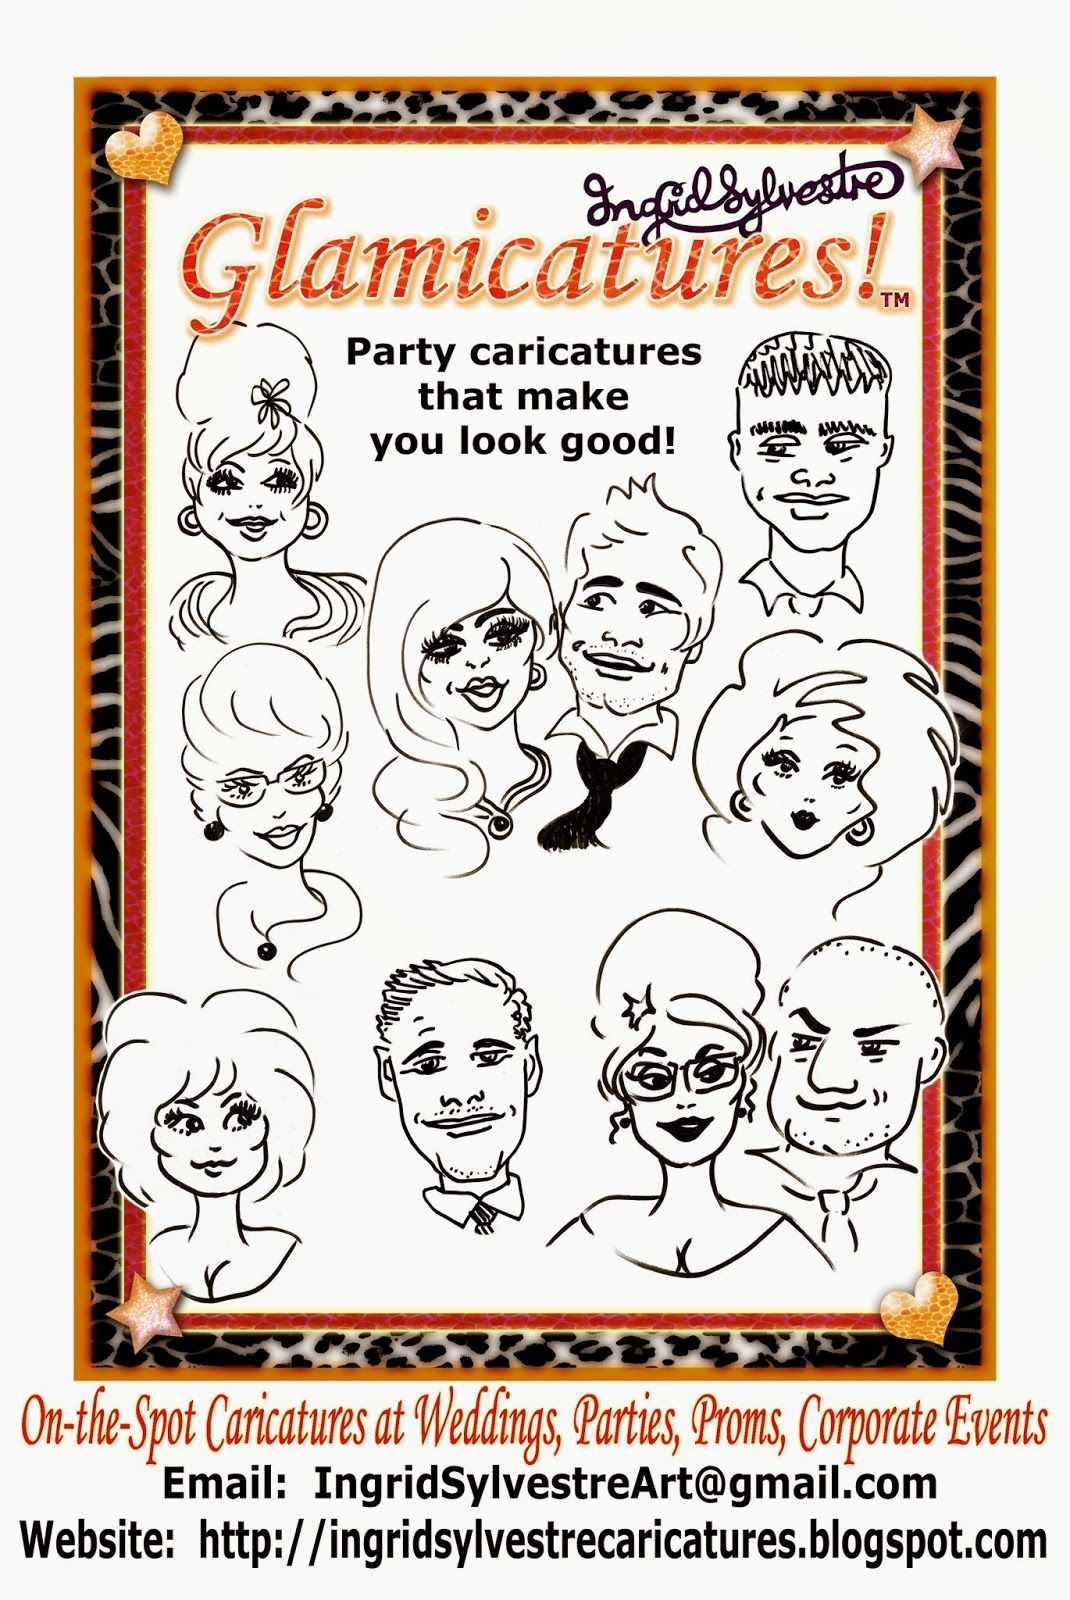 Fun Wedding ideas. Wedding Day Entertainment Ideas. Unique ideas for Wedding Reception Entertainment. Great ideas for unusual wedding day entertainment. Wedding event ideas for entertainment during reception. Unusual interesting fun Wedding planning ideas. Glamicatures - party caricatures that make you look good! by UK caricature artist Ingrid Sylvestre